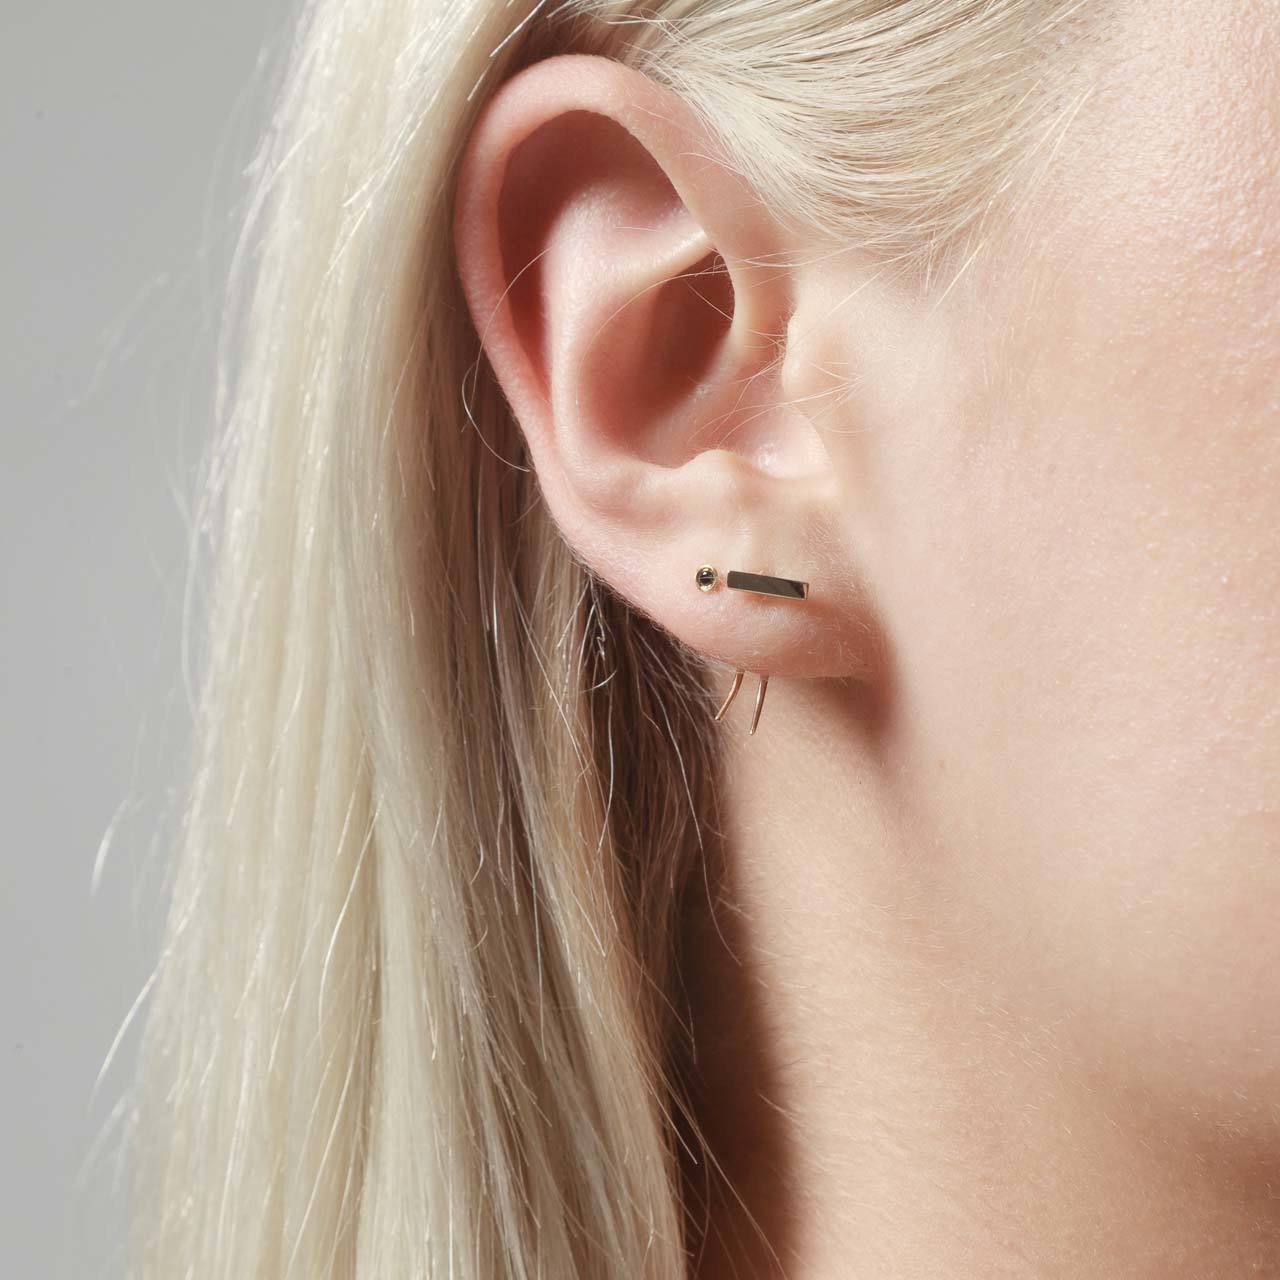 Infinite Tusk Earring With Stone in 14K White Gold - Gabriela Artigas